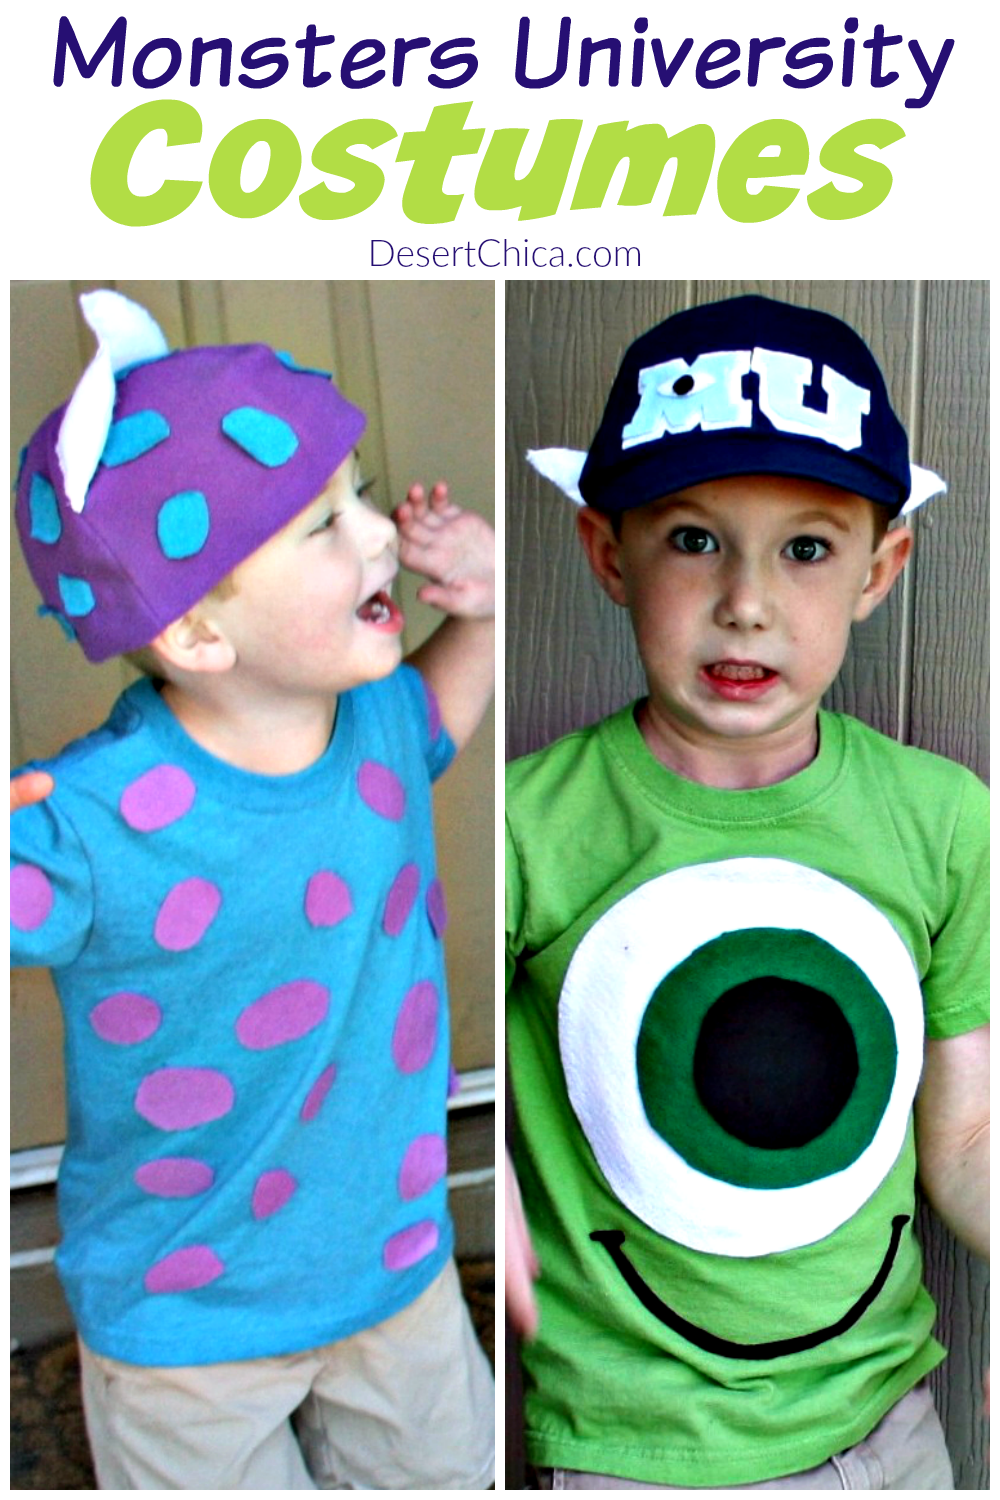 DIY Monsters Inc Costume ideas and tutorials including Mike and Sulley or Sullivan perfect for kids, teens, best friends, toddlers, adults or college friends. Learn how to make these easy homemade costumes that include an awesome hat perfect for Halloween.